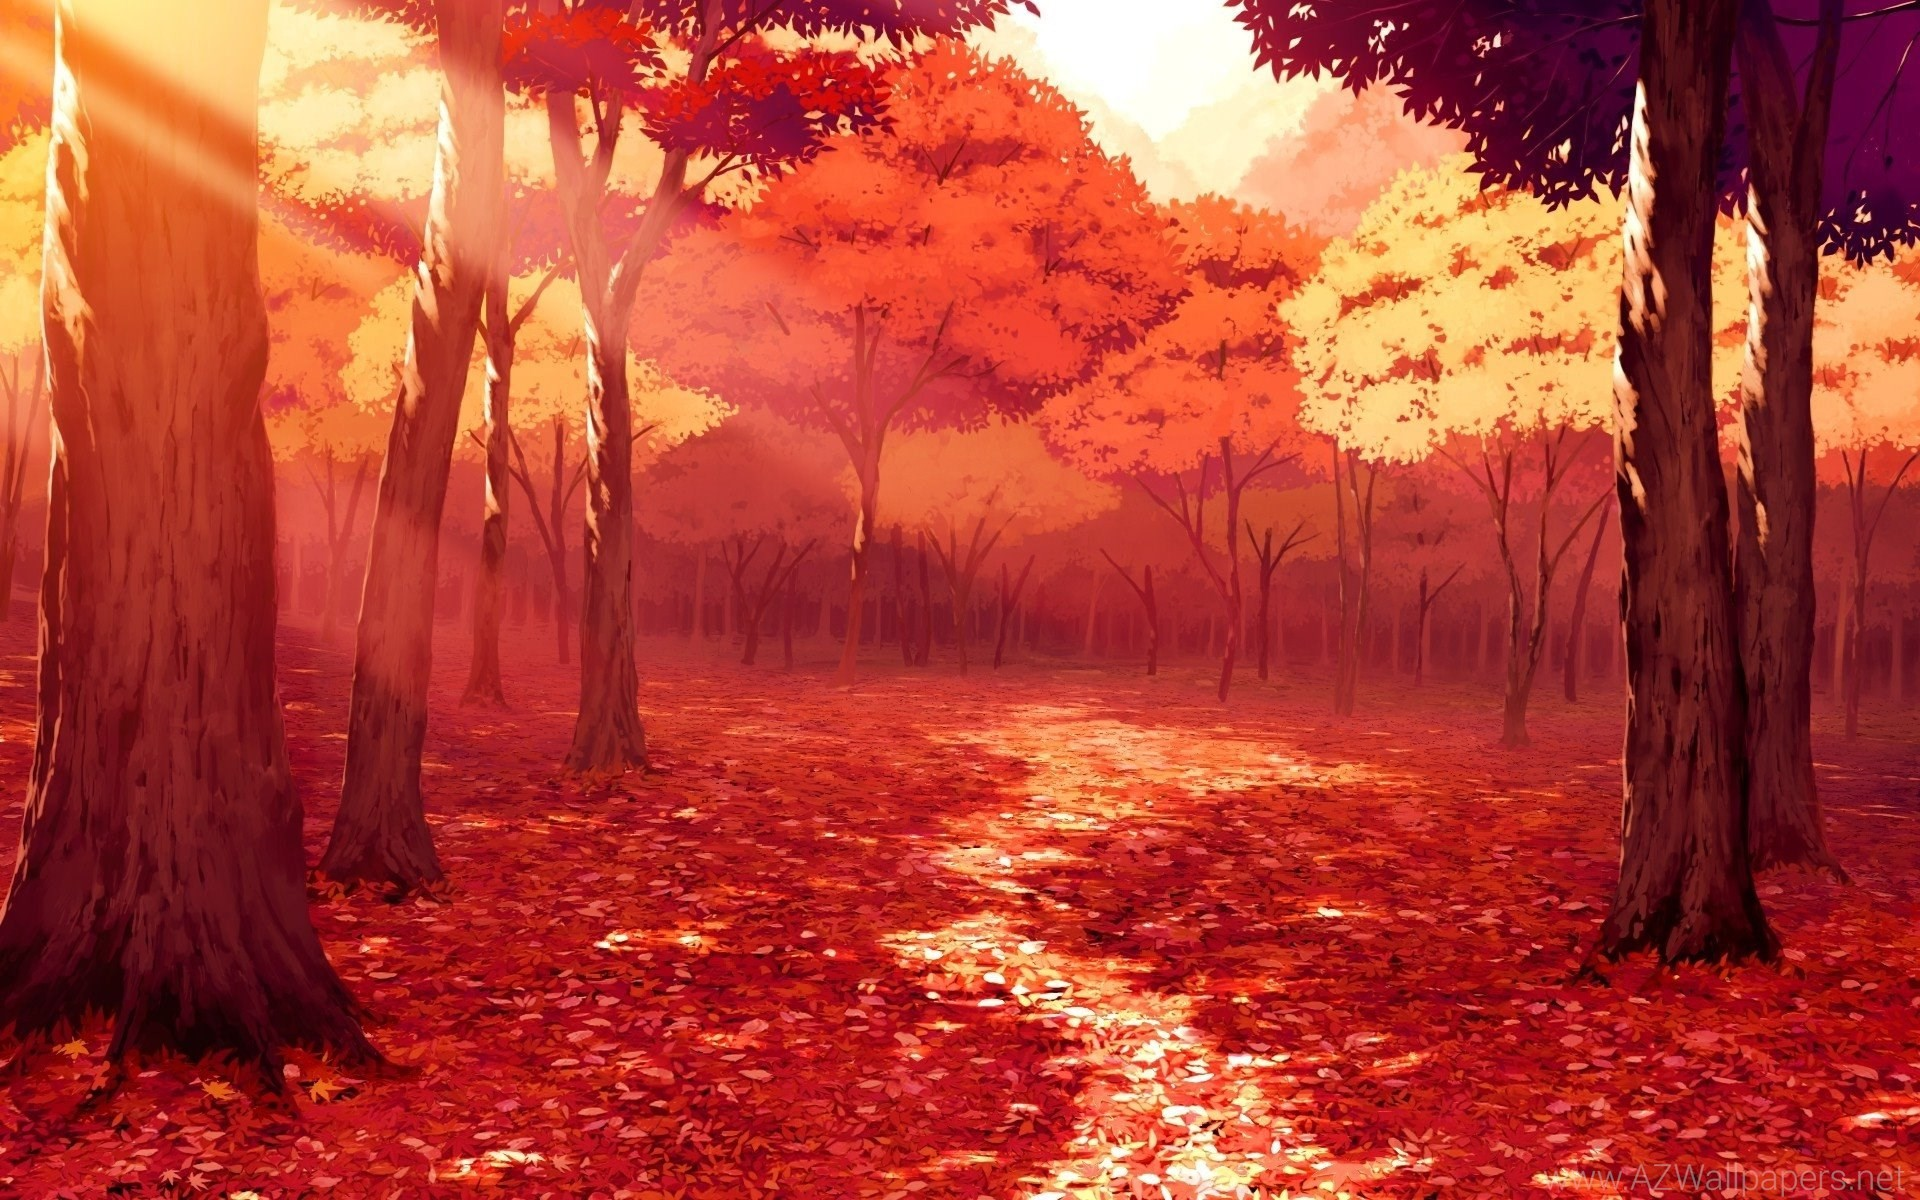 Drawing, Artwork, Fall, Leaves, Sunlight, Forest, Red, Anime .